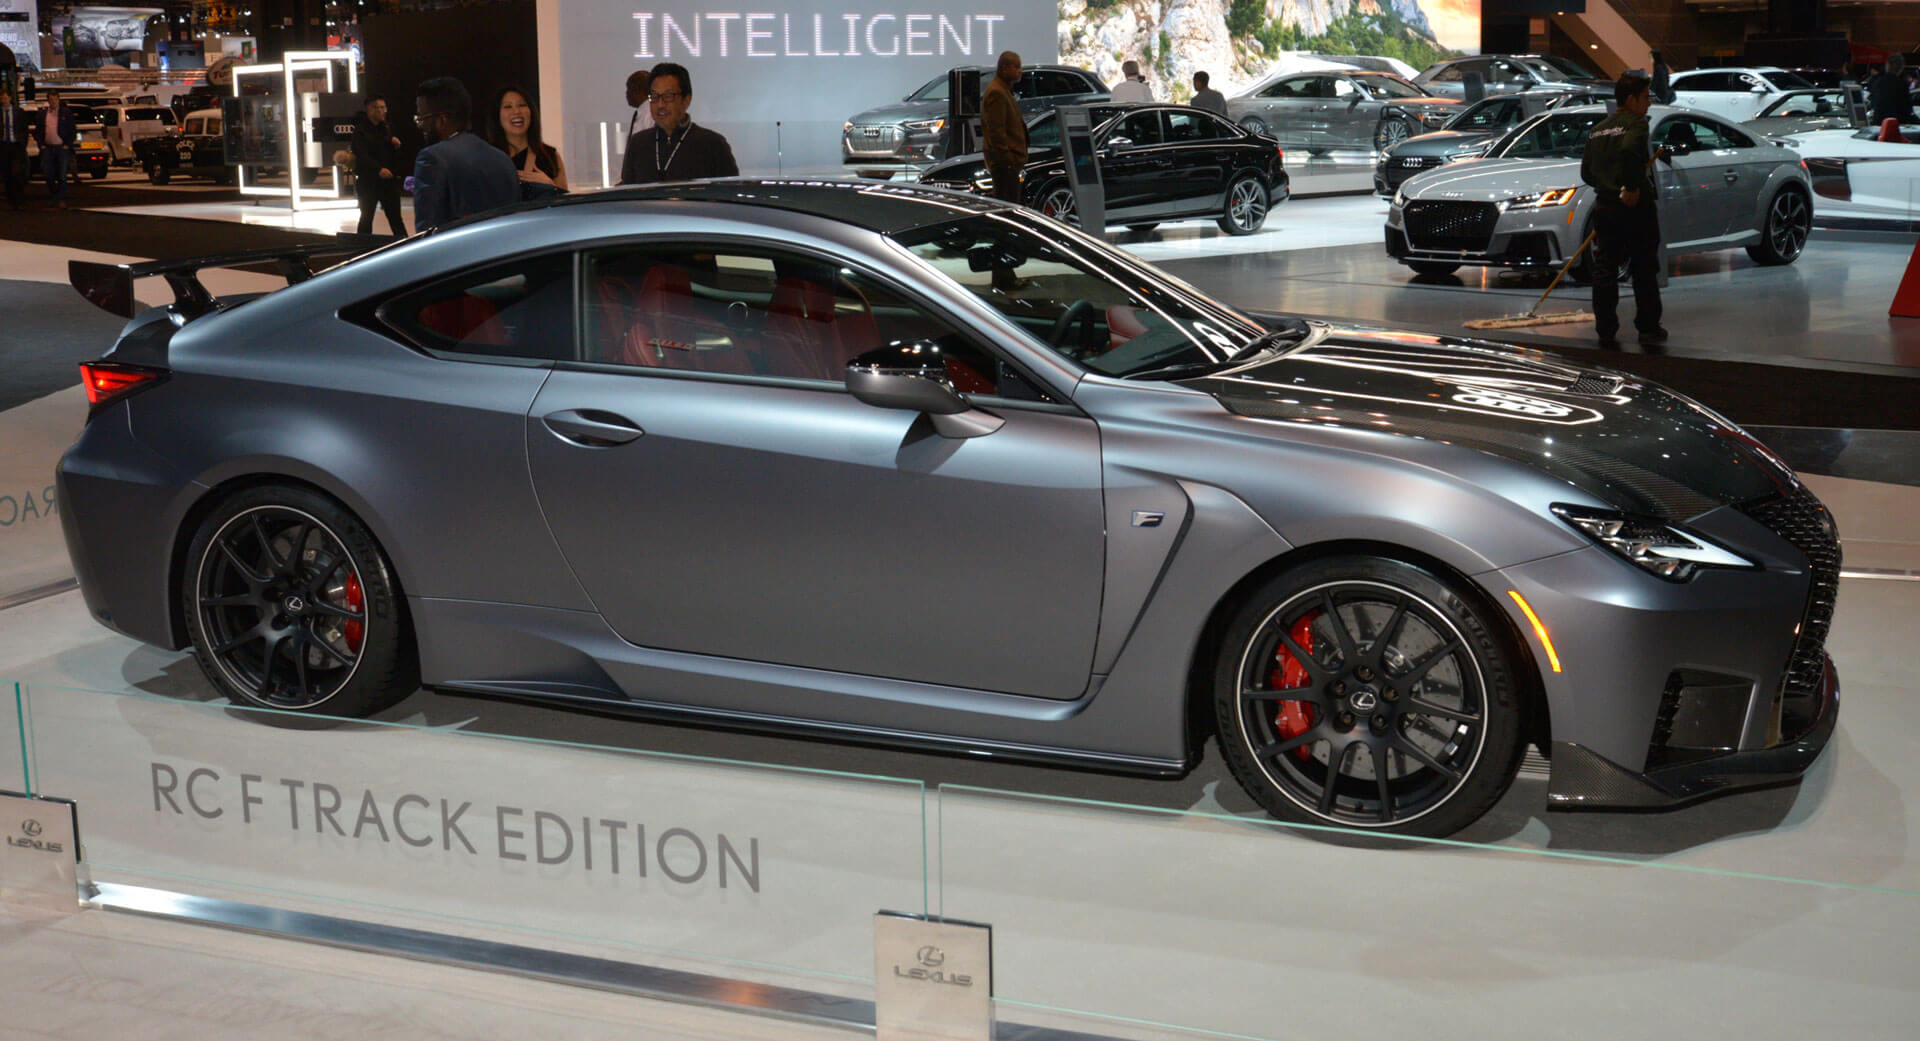 2020 lexus rc f track edition looks fast even standing still